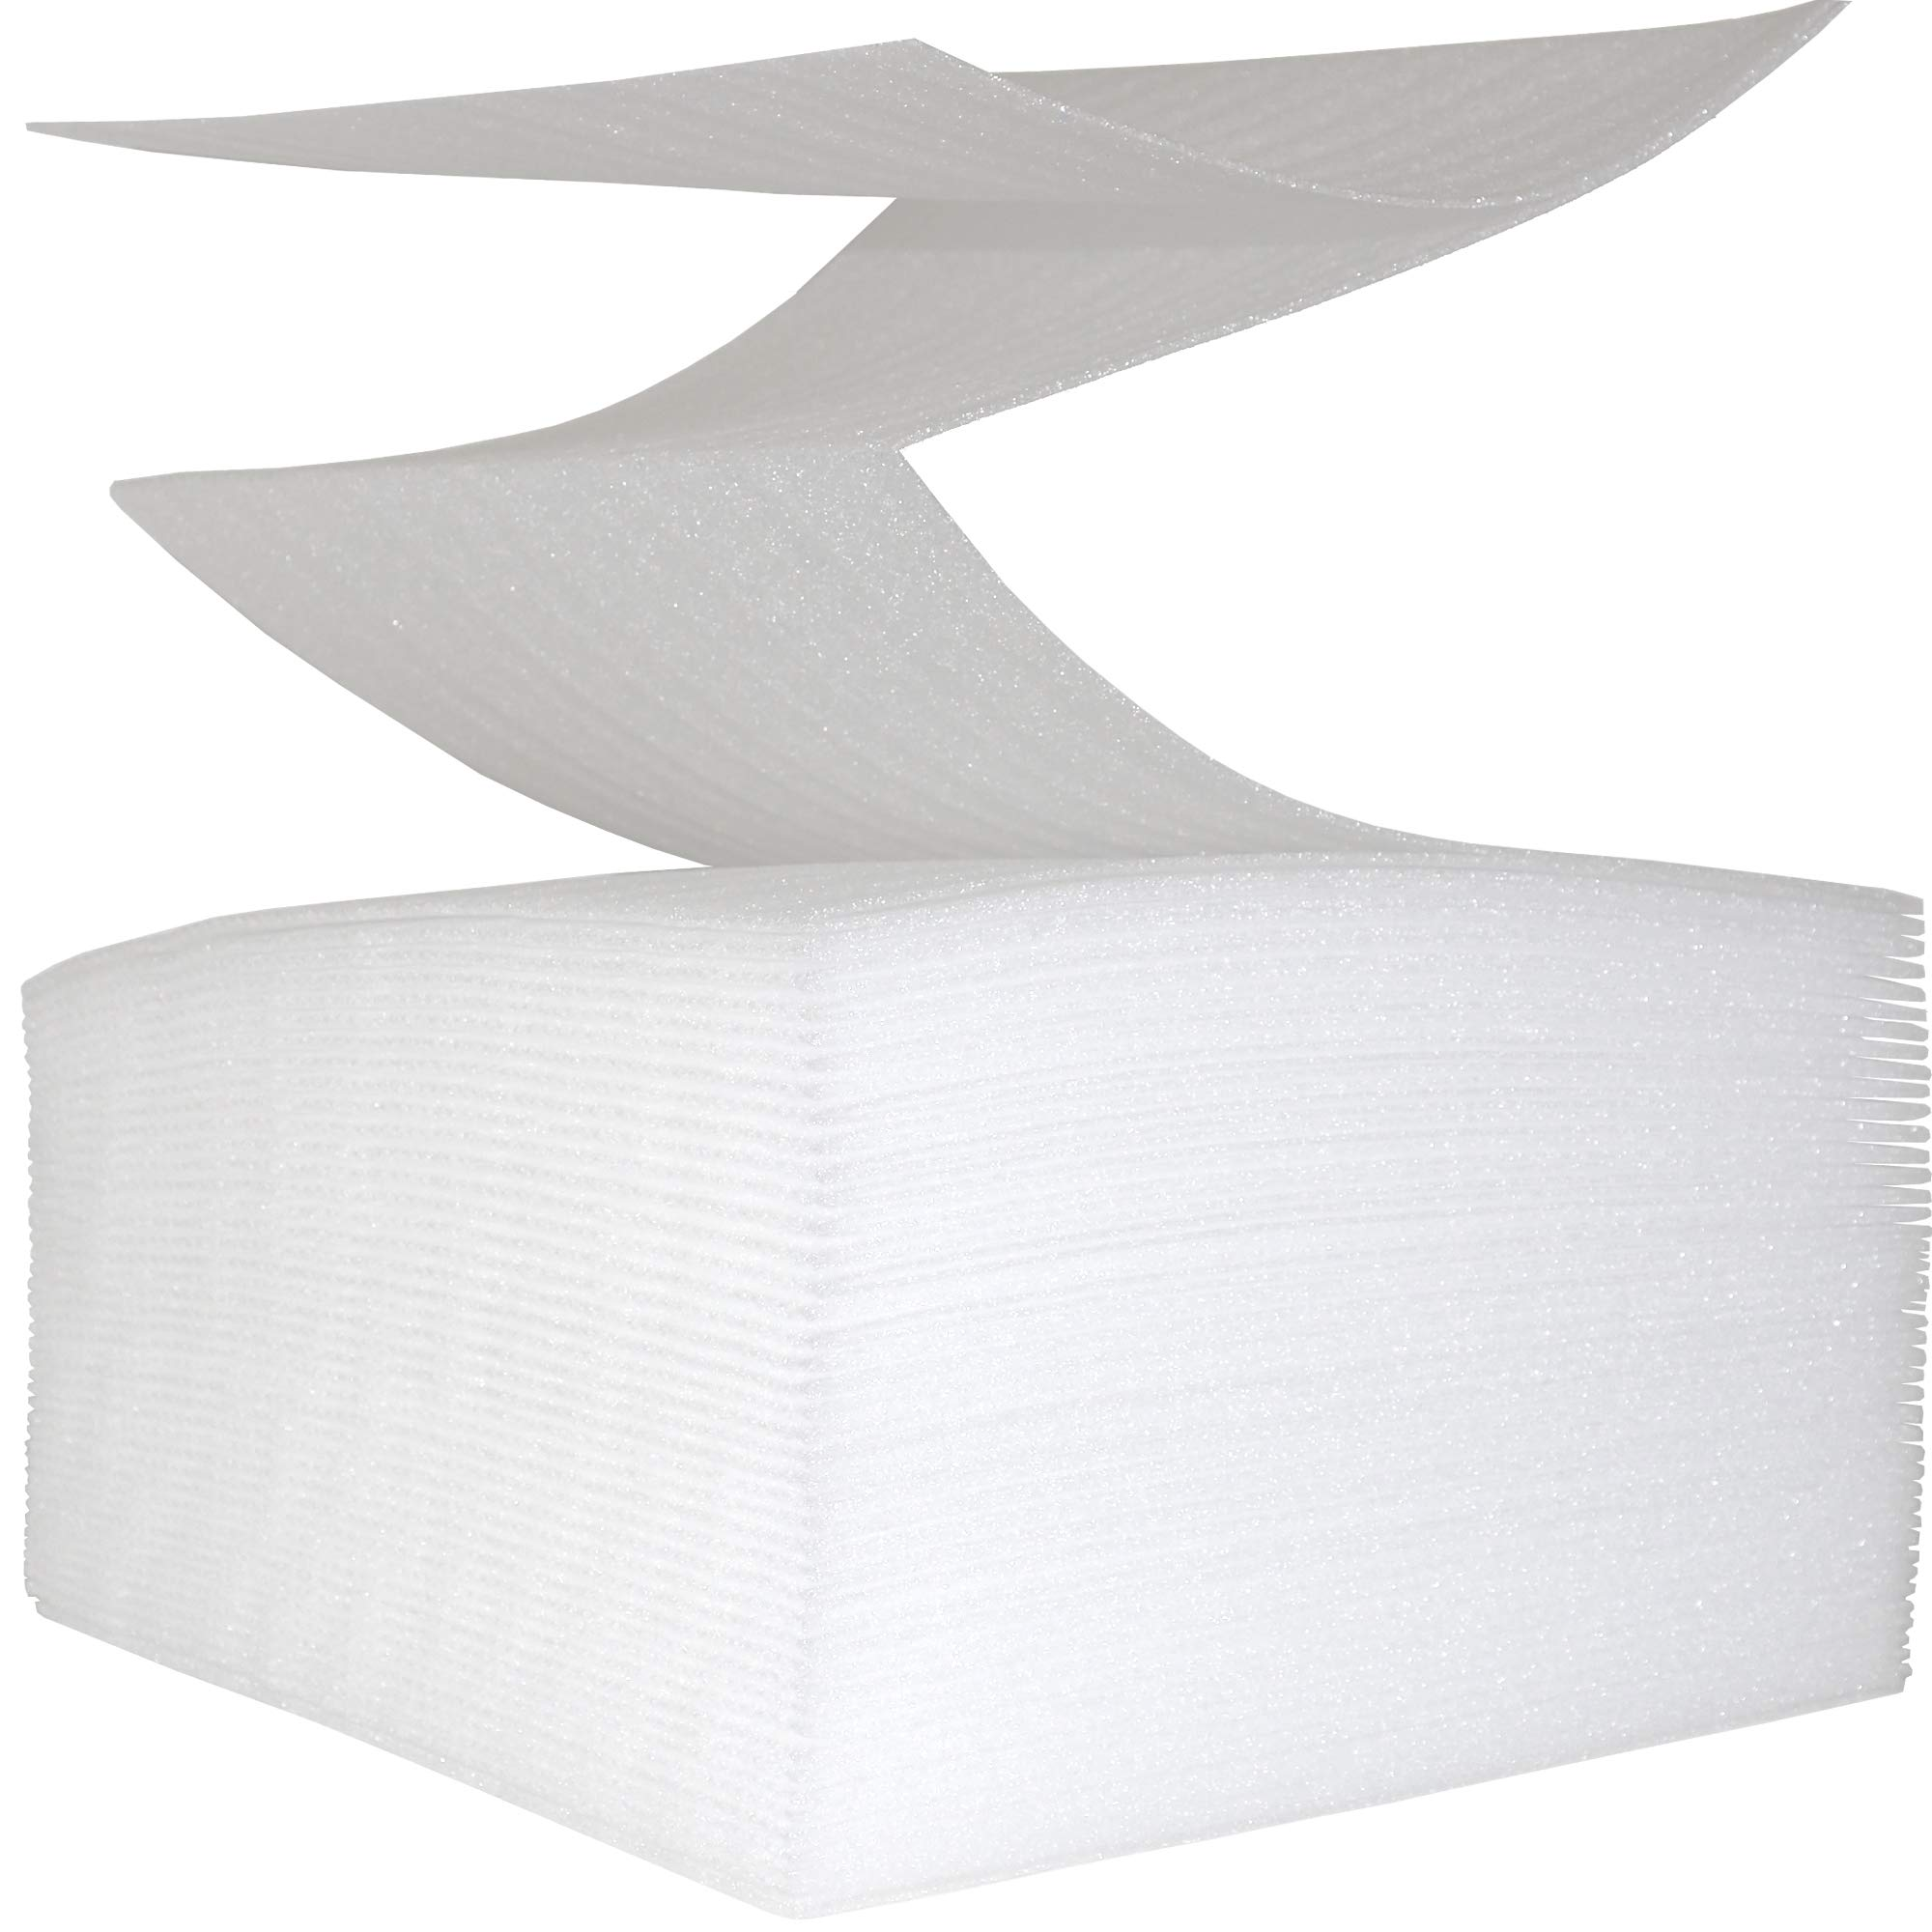 100 Count - Perforated Cushion Foam Wrap Sheets by DaBo Goods - 12'' x 12'' - Packing, Moving and Storage Supplies - Protection for Dishes, Plates, China, Glasses and Furniture Edges (White) by DaBo Goods